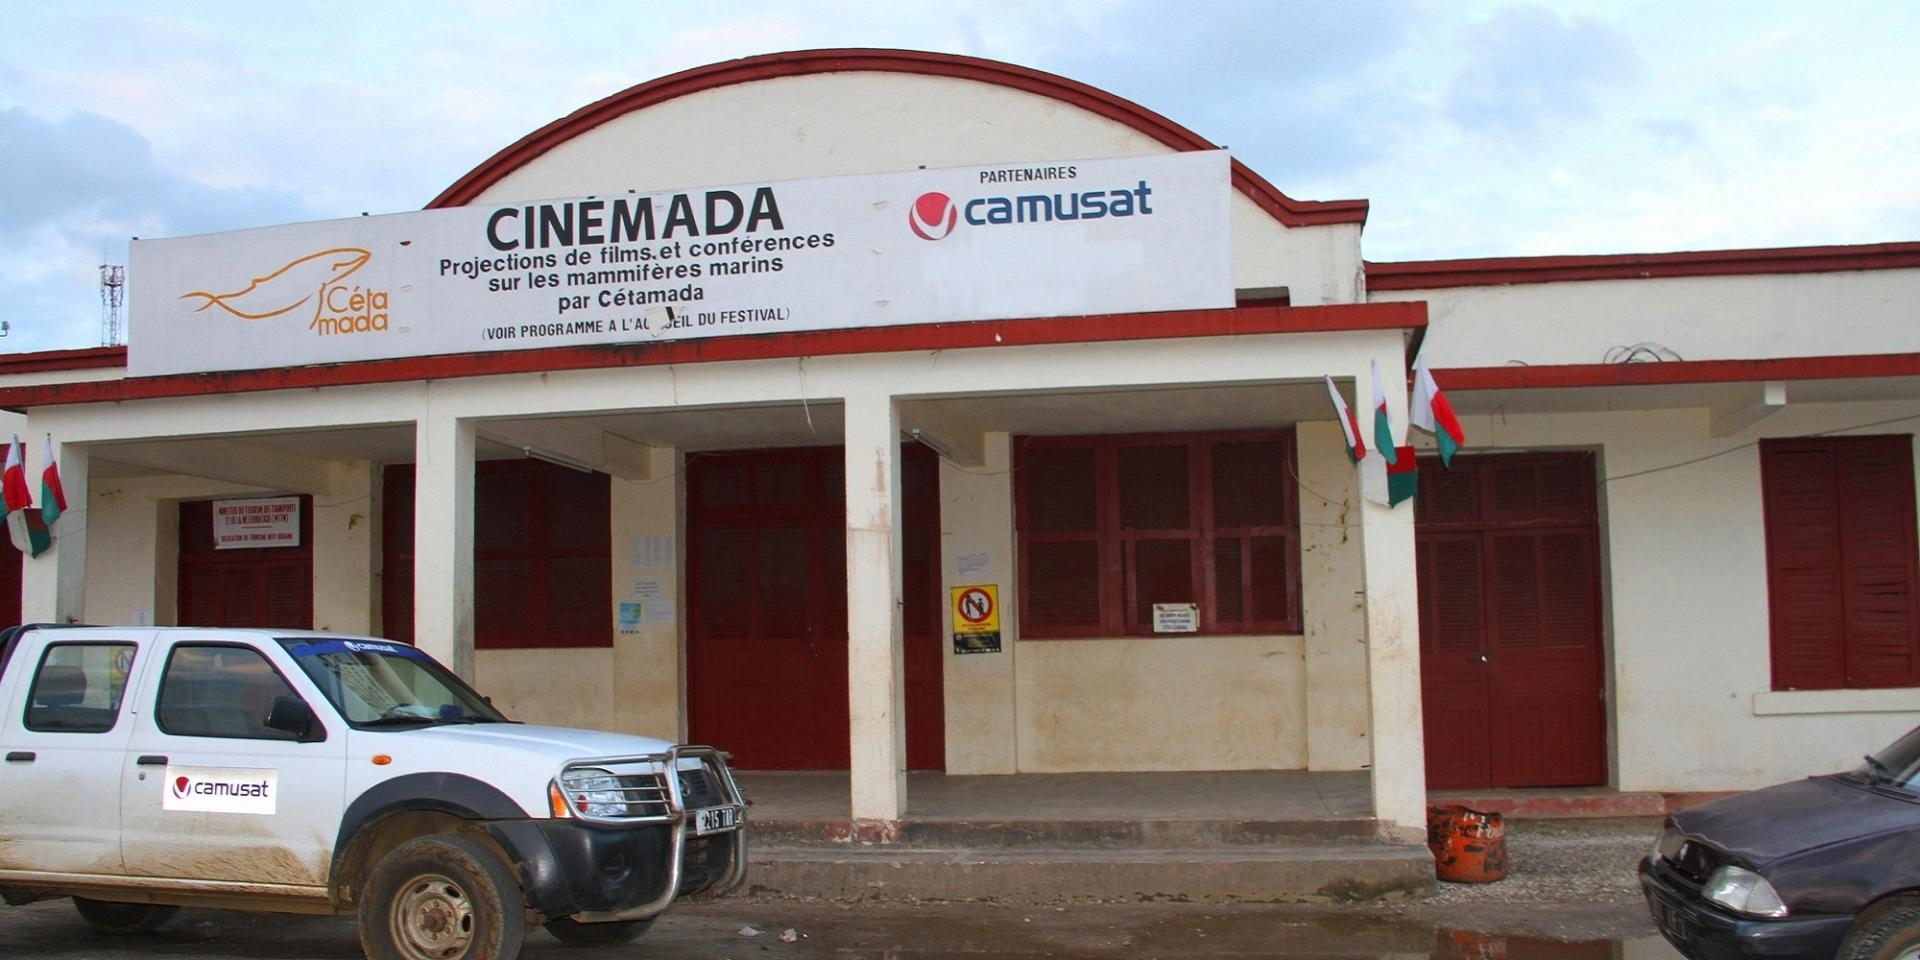 CINEMADA